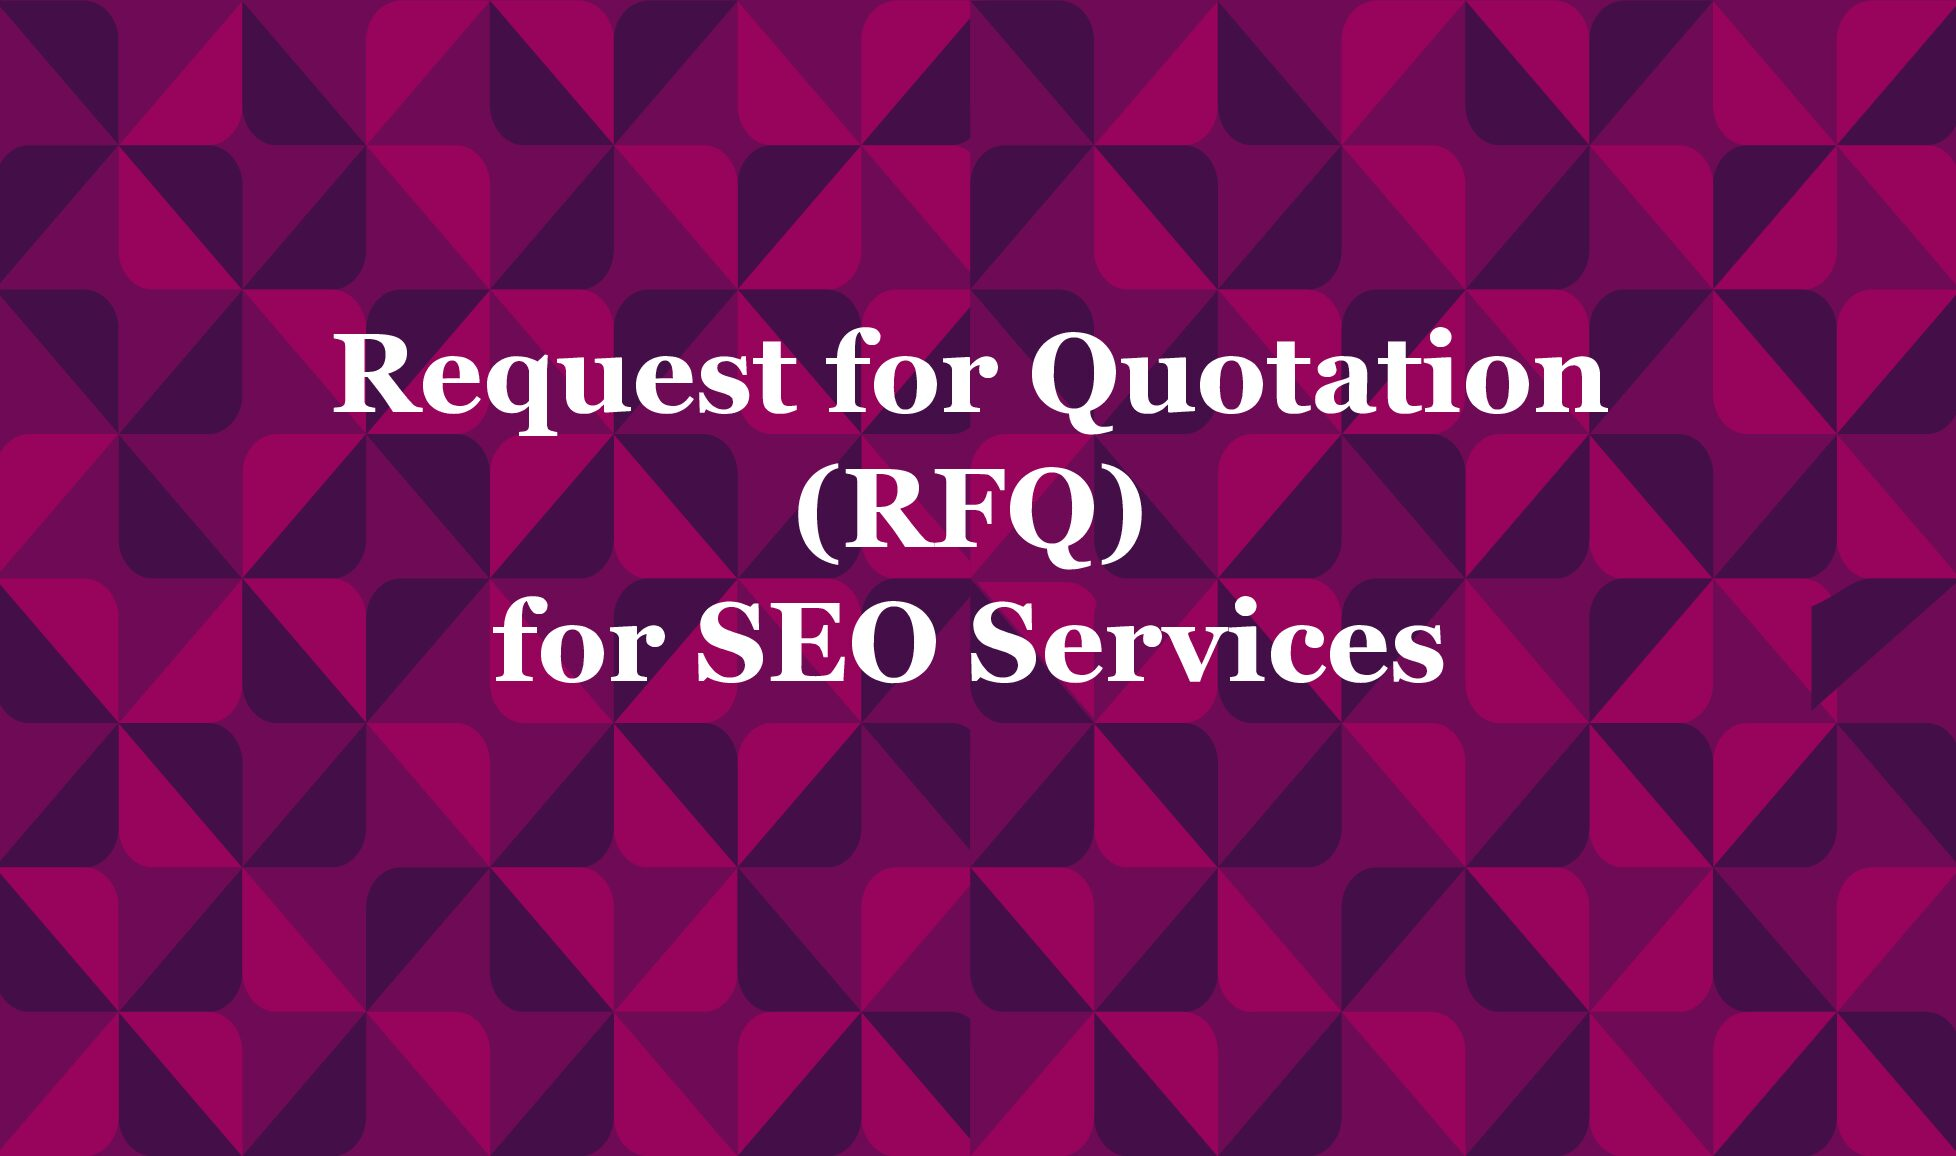 Request for Quotation (RFQ) for SEO Services